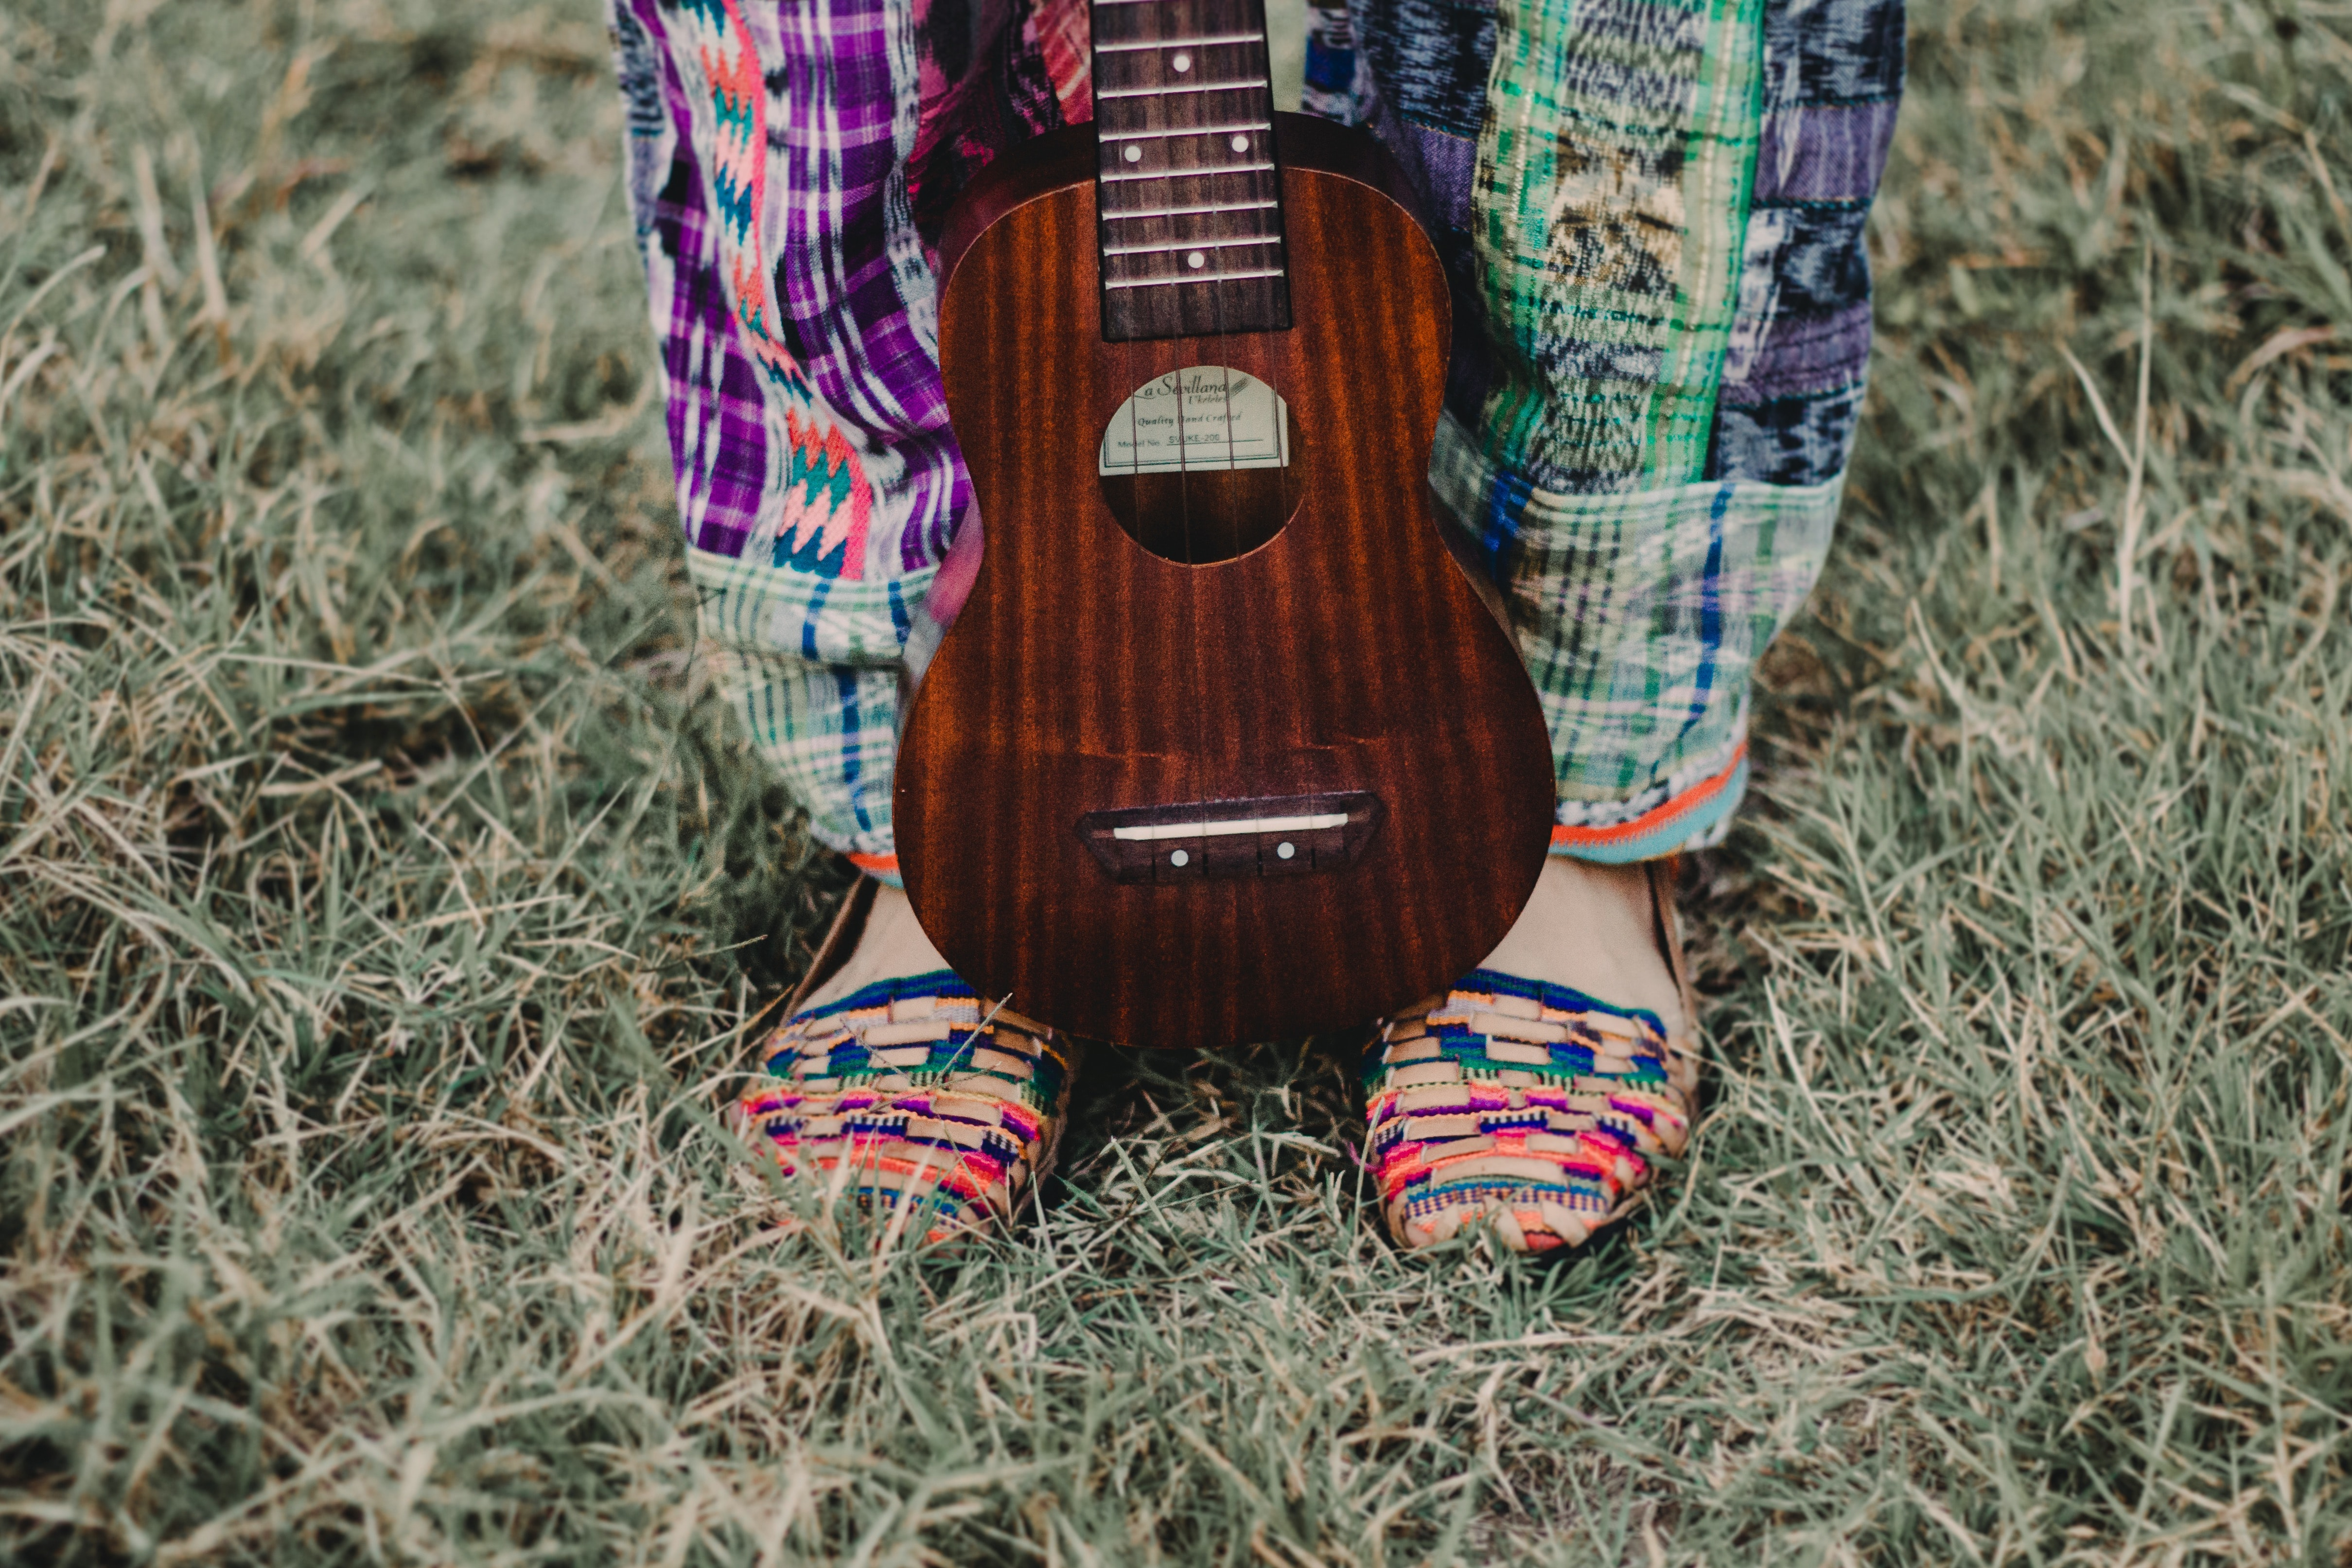 brown ukulele on person's feet